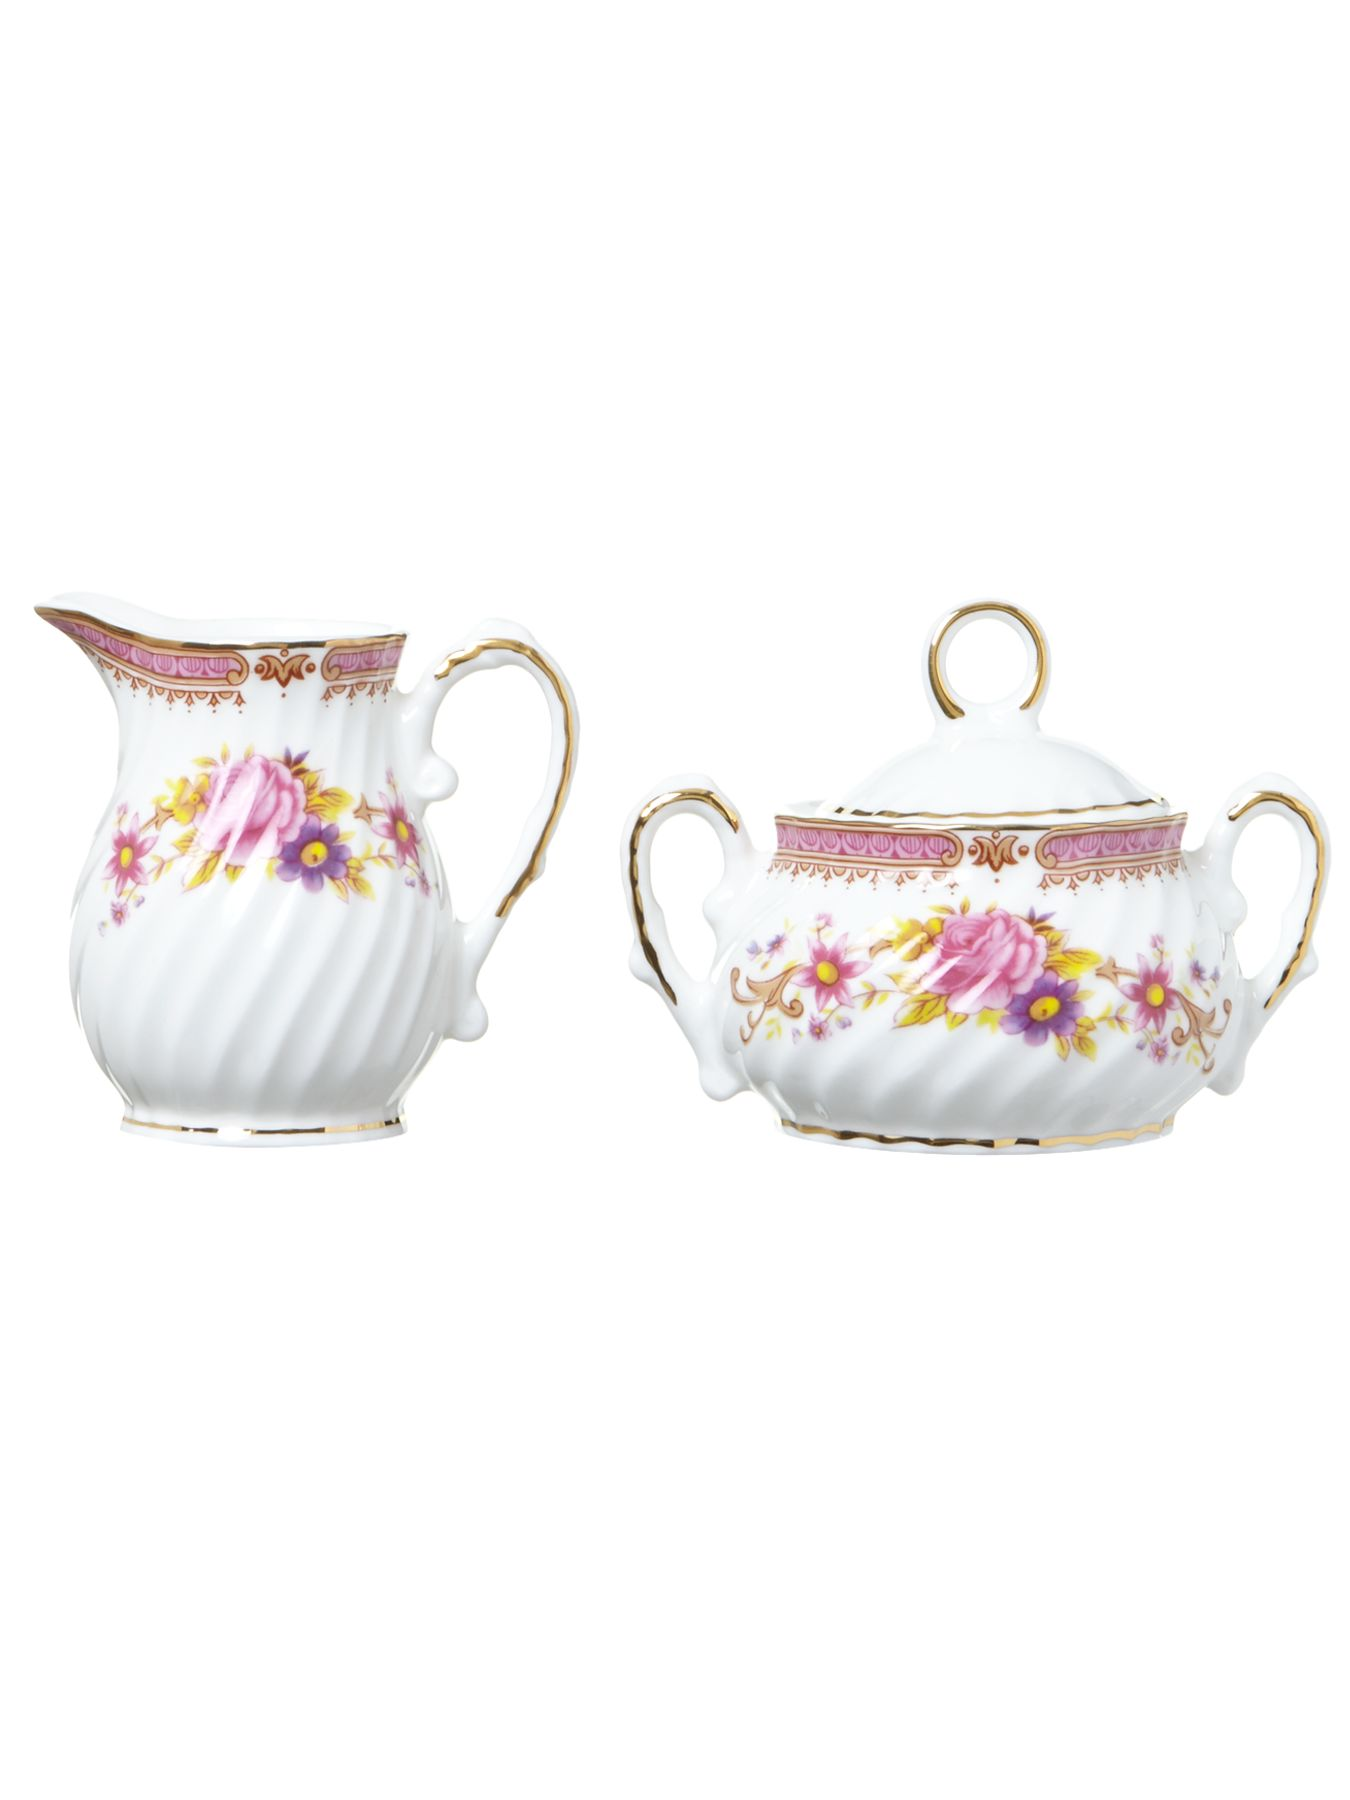 Kr creamer & sugar pot